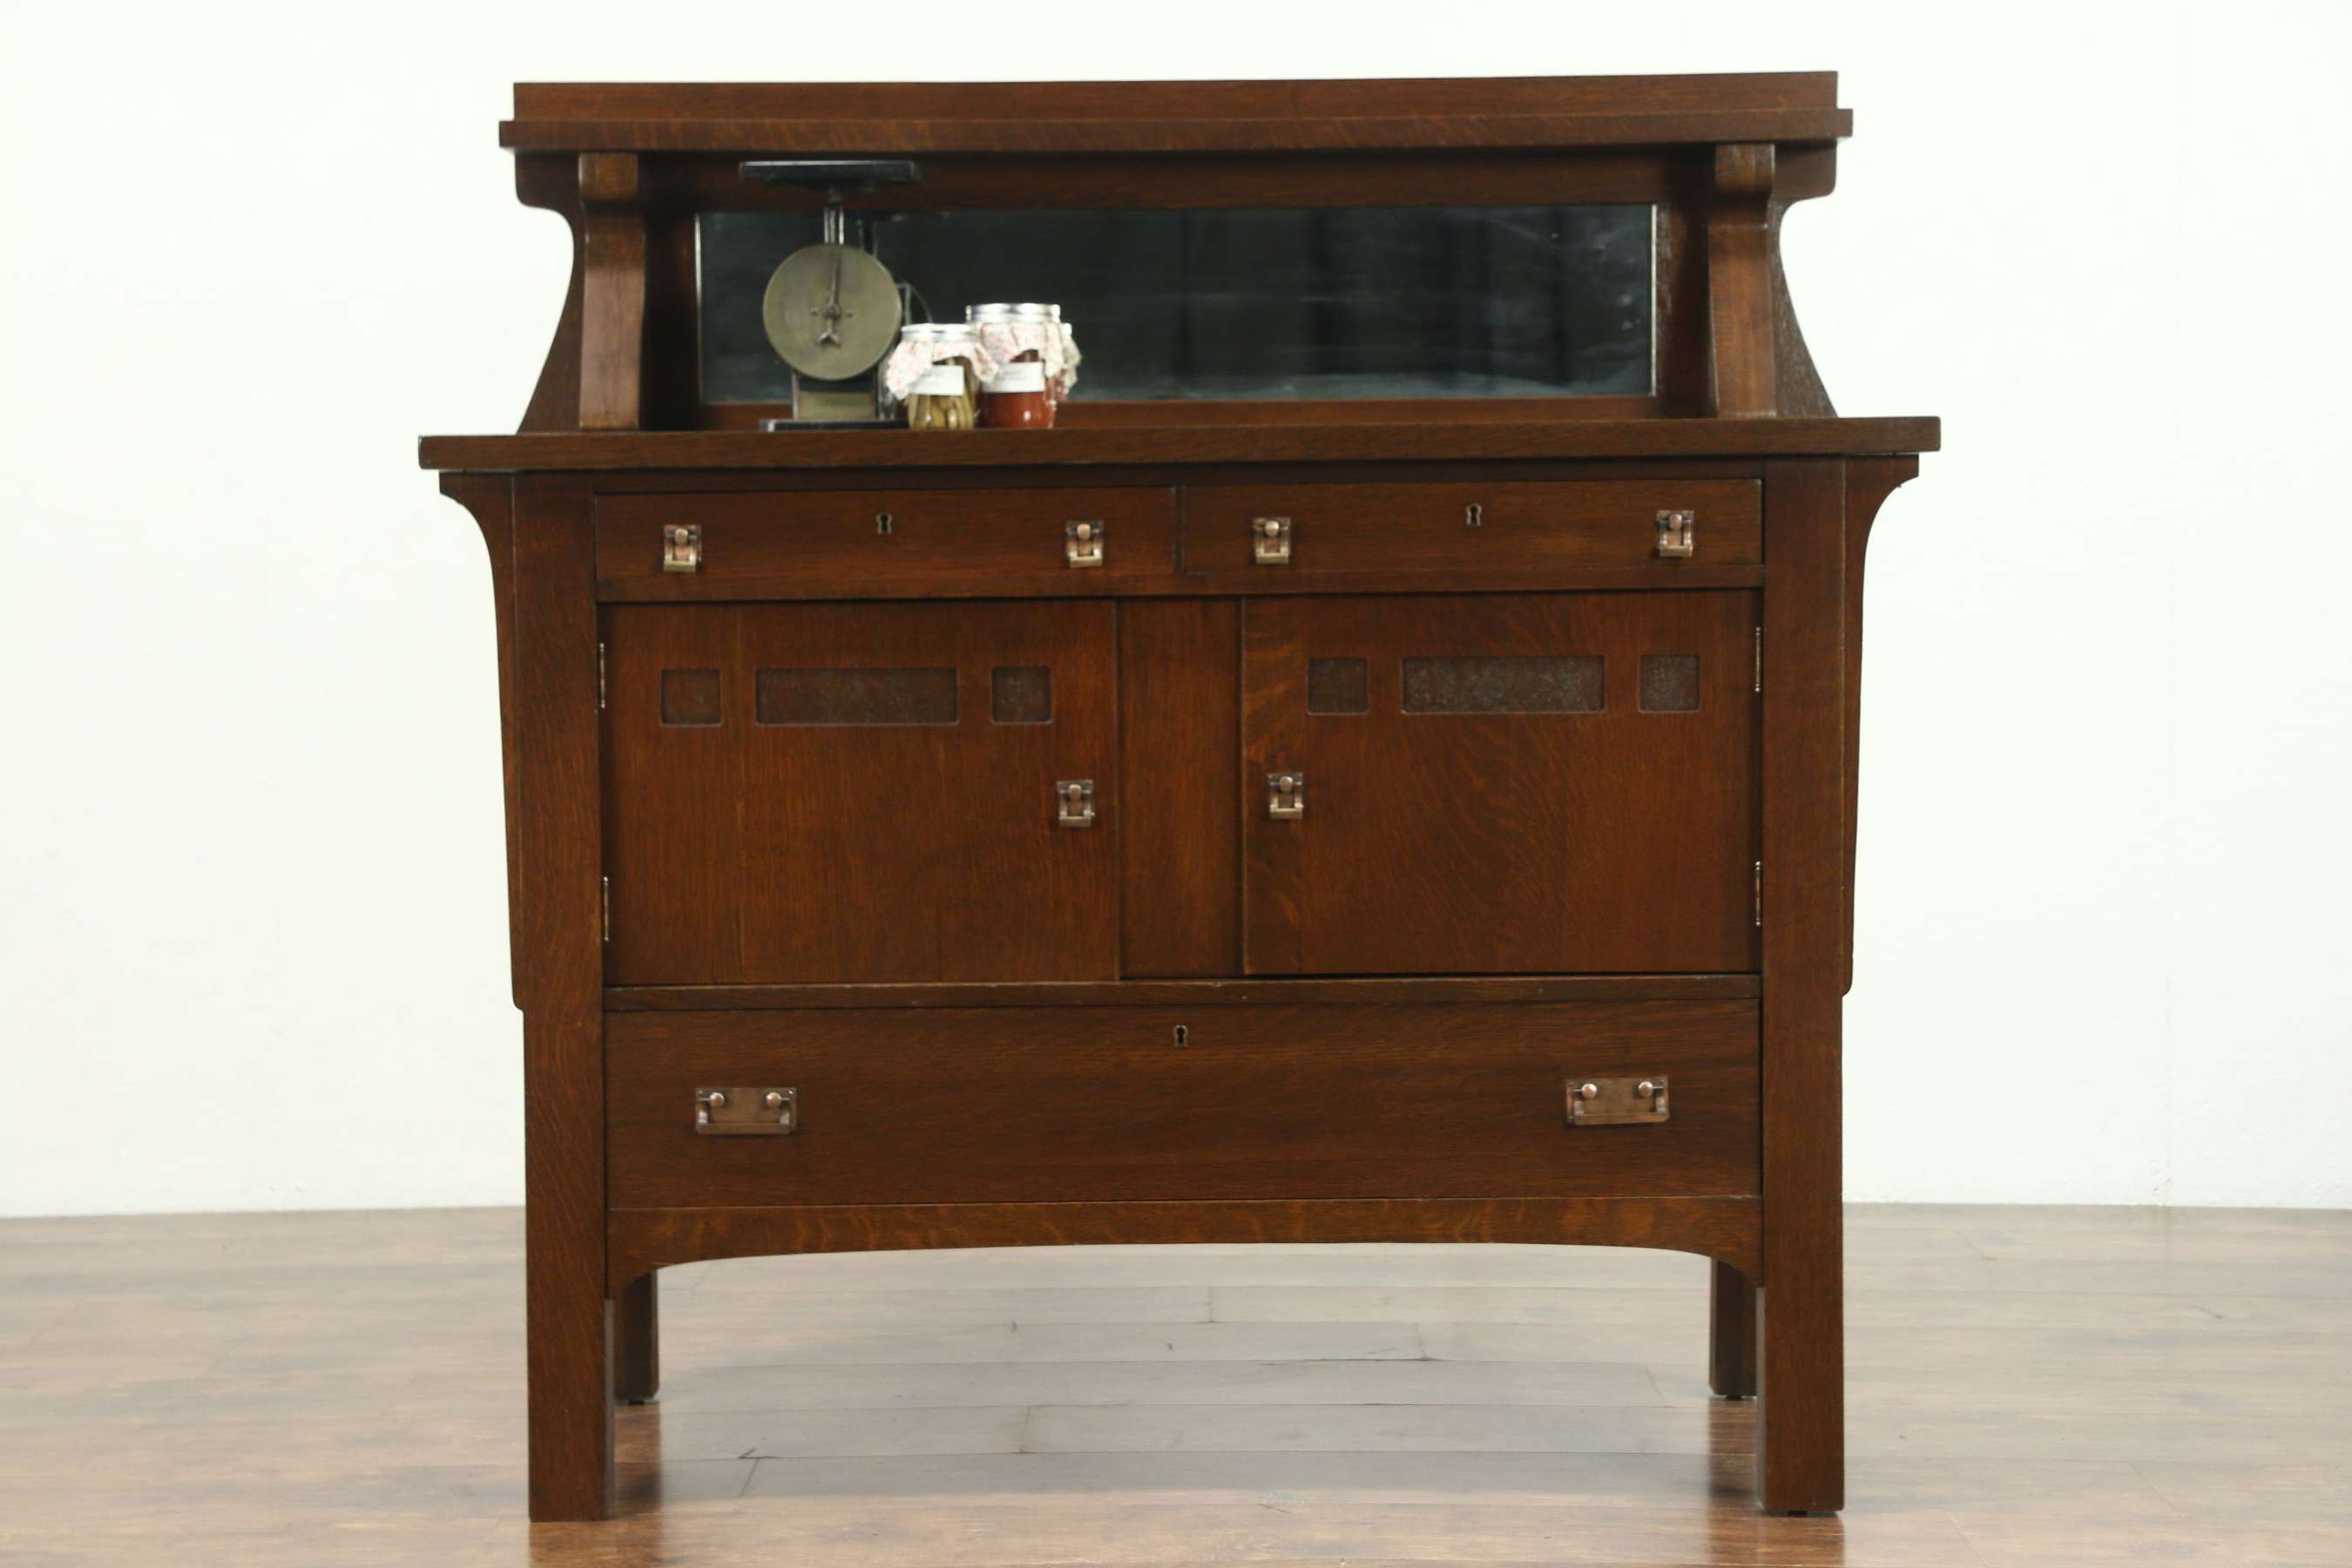 Arts & Crafts Mission Oak Antique Sideboard Server Or Craftsman Pertaining To Mission Sideboards (View 19 of 20)